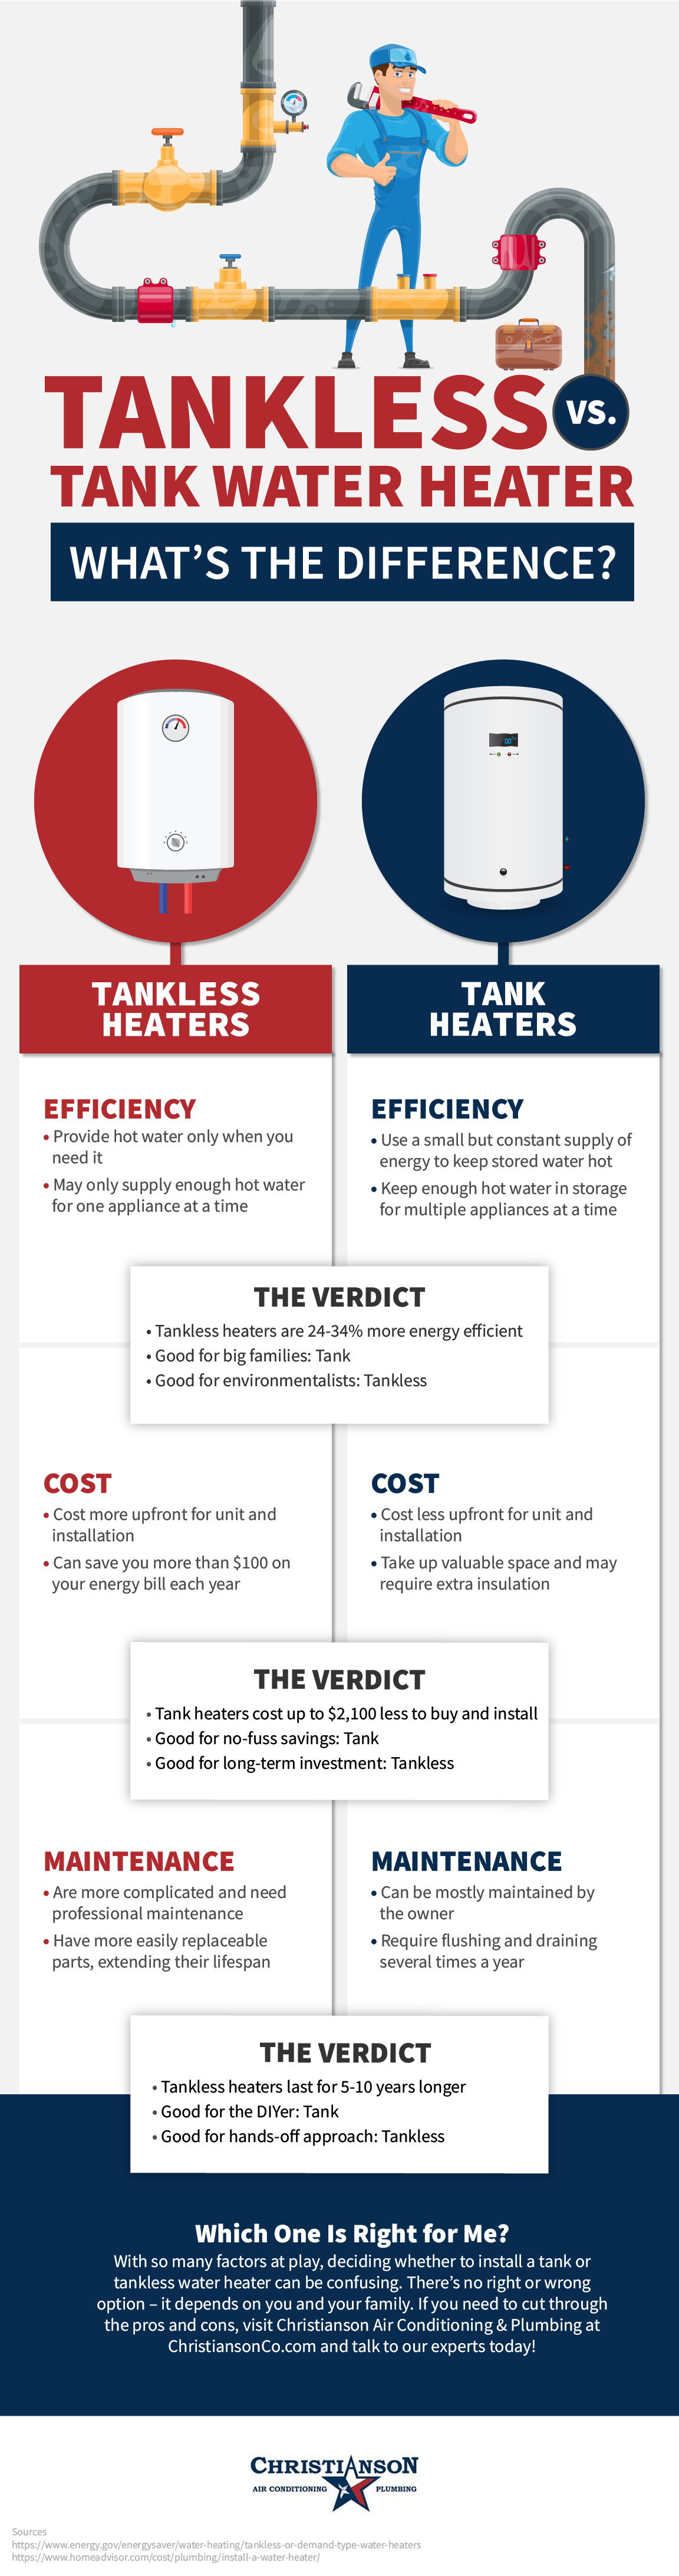 Tankless vs. Tank Water Heater Infographic